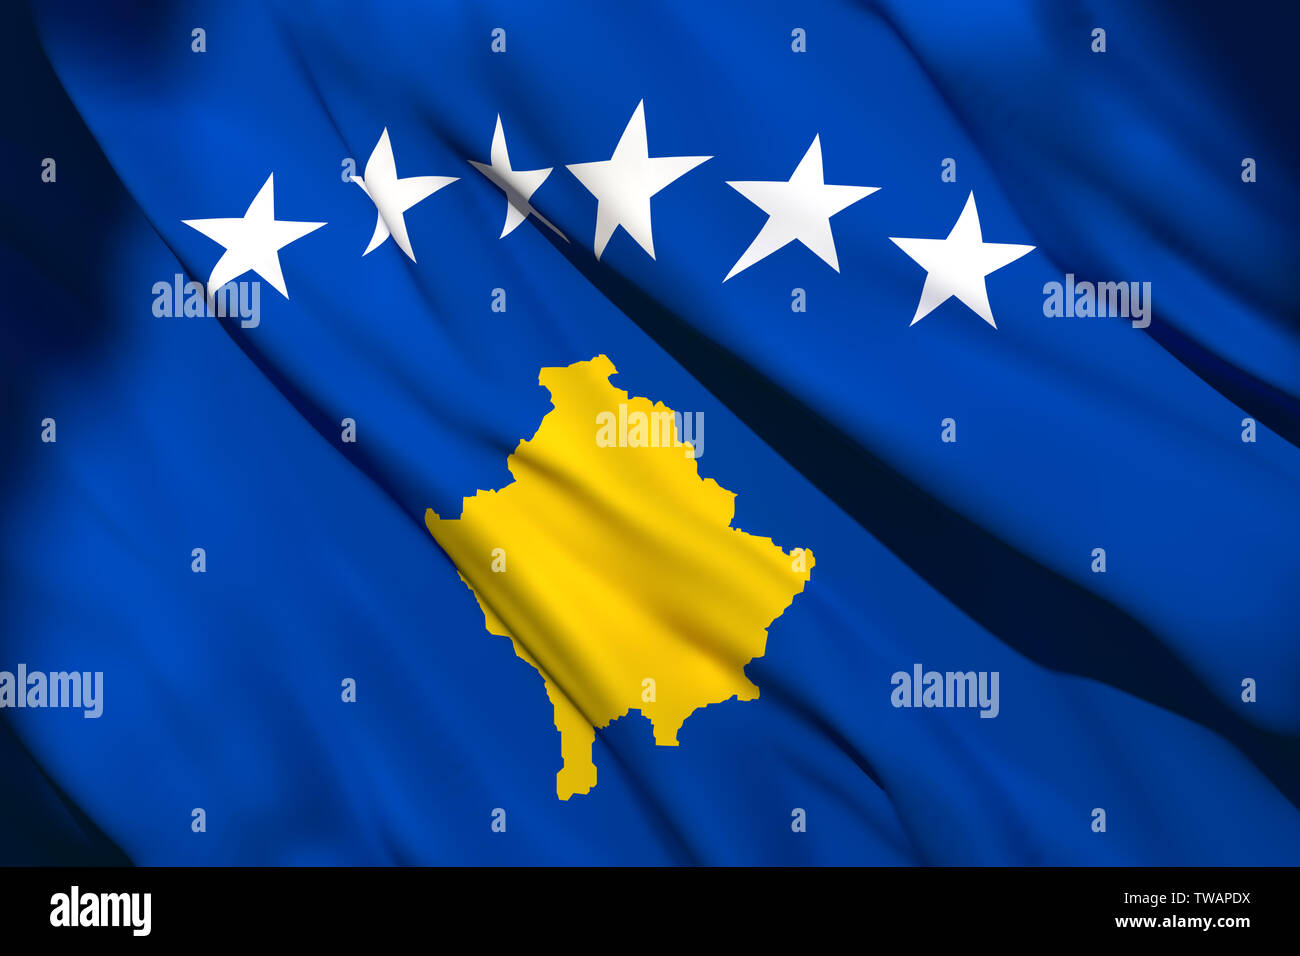 3d rendering of a Kosovo national flag waving Stock Photo